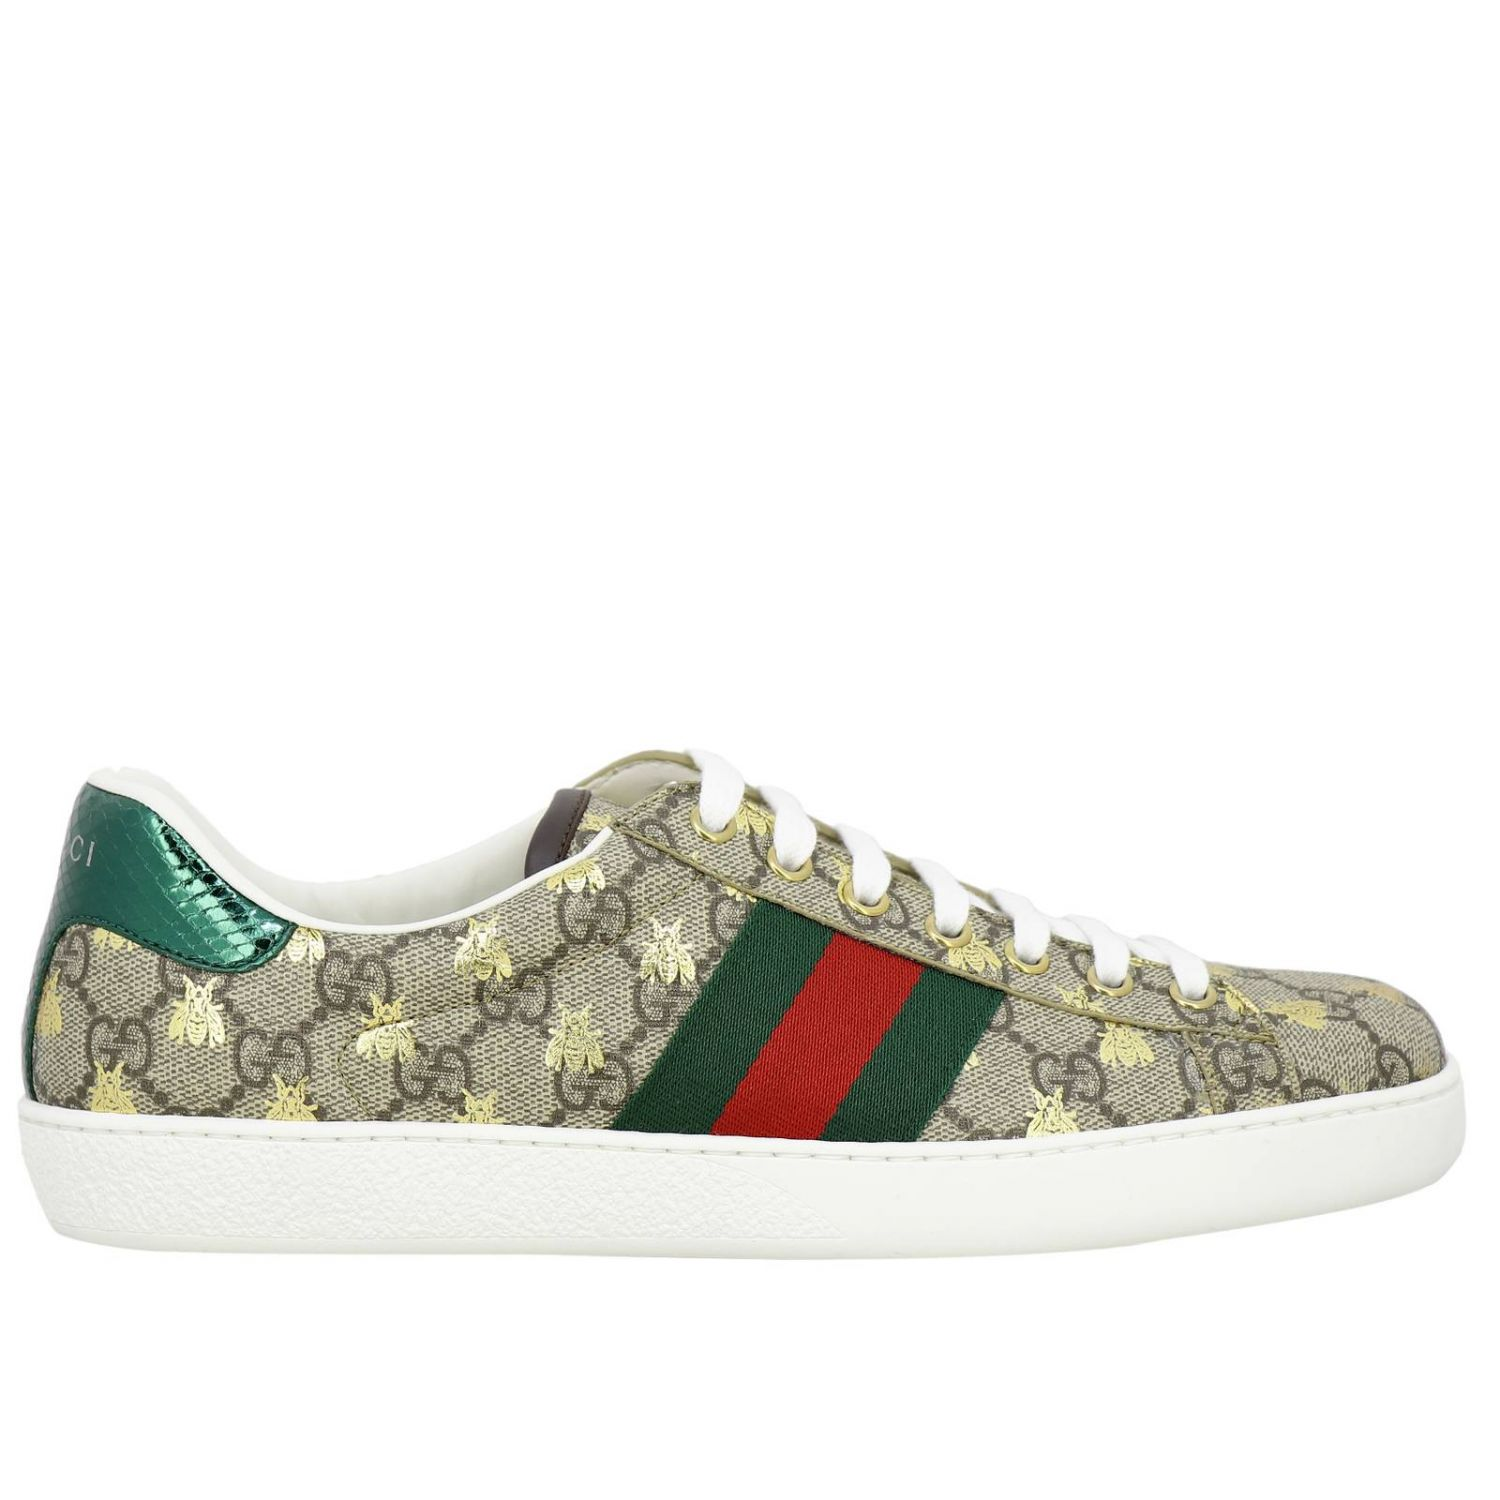 Sneakers New Ace in pelle GG Supreme Gucci con fasce Web e stampa Ape all over beige 1